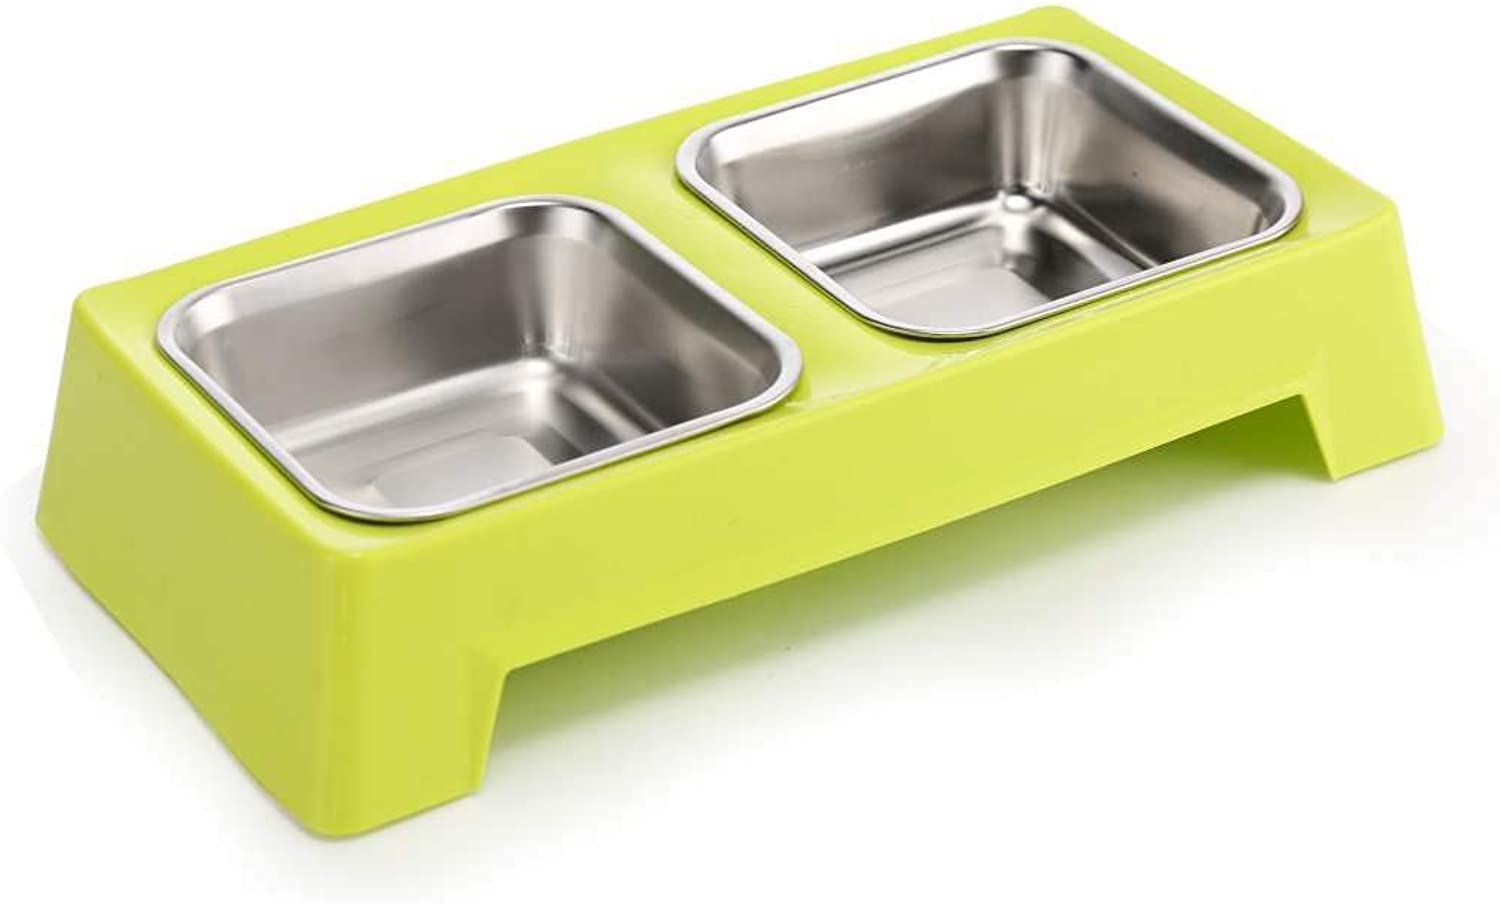 Pet Bowls Pet Supplies Stainless Steel Bowl Double Bowl, Heightened Cat and Dog Food Bowl Bowl 1 Bowl Dual Purpose Pet Diet Water